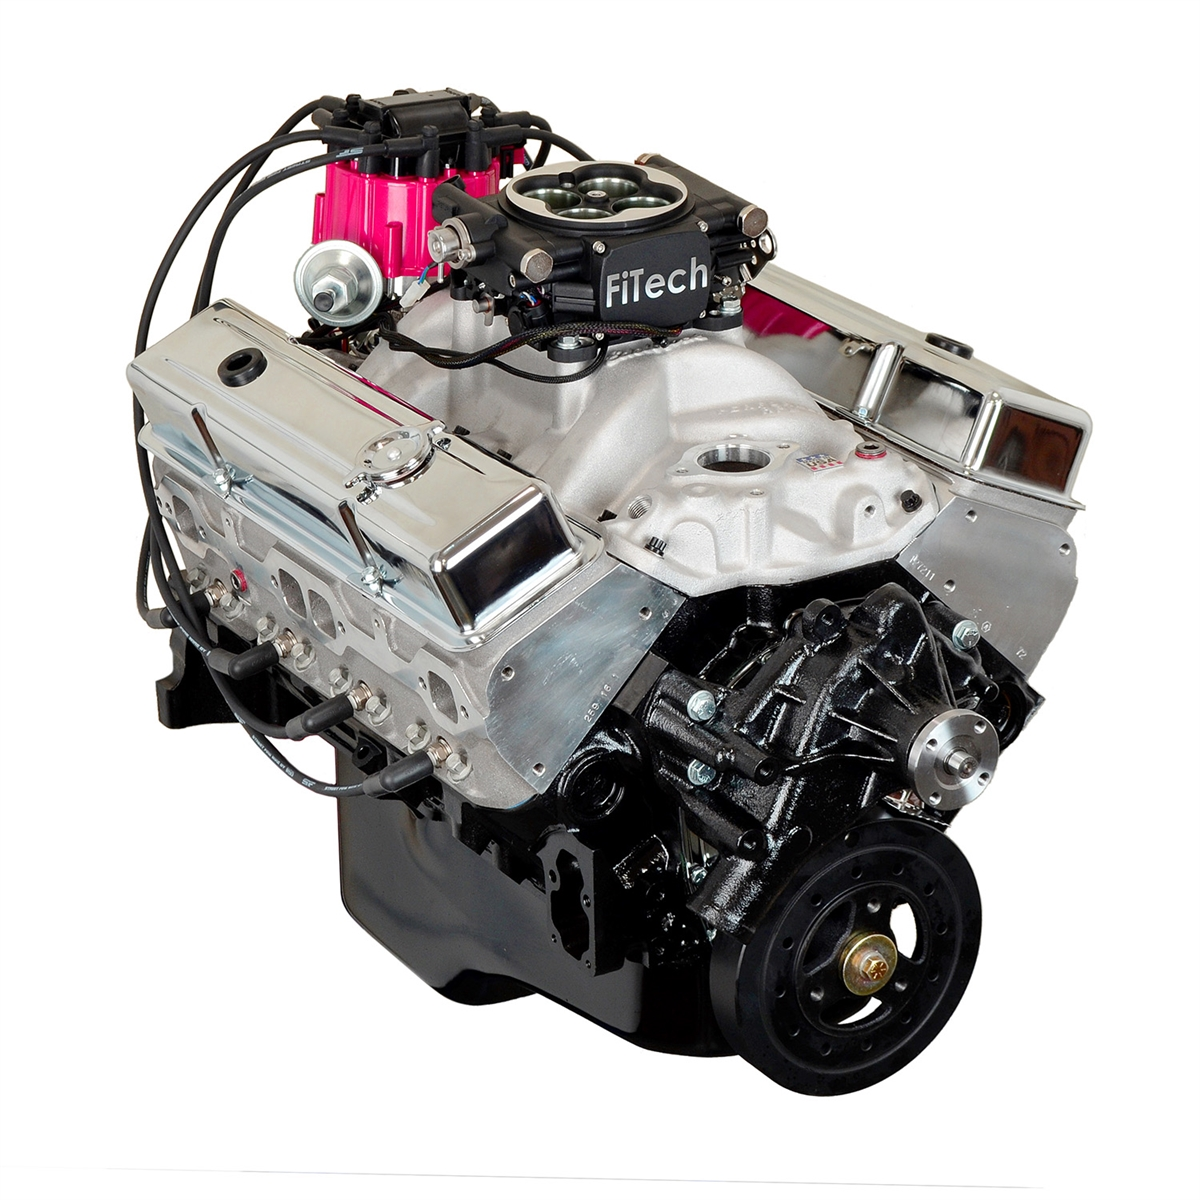 ATK HP36C-EFI Chevy 383 with FITECH EFI 435HP